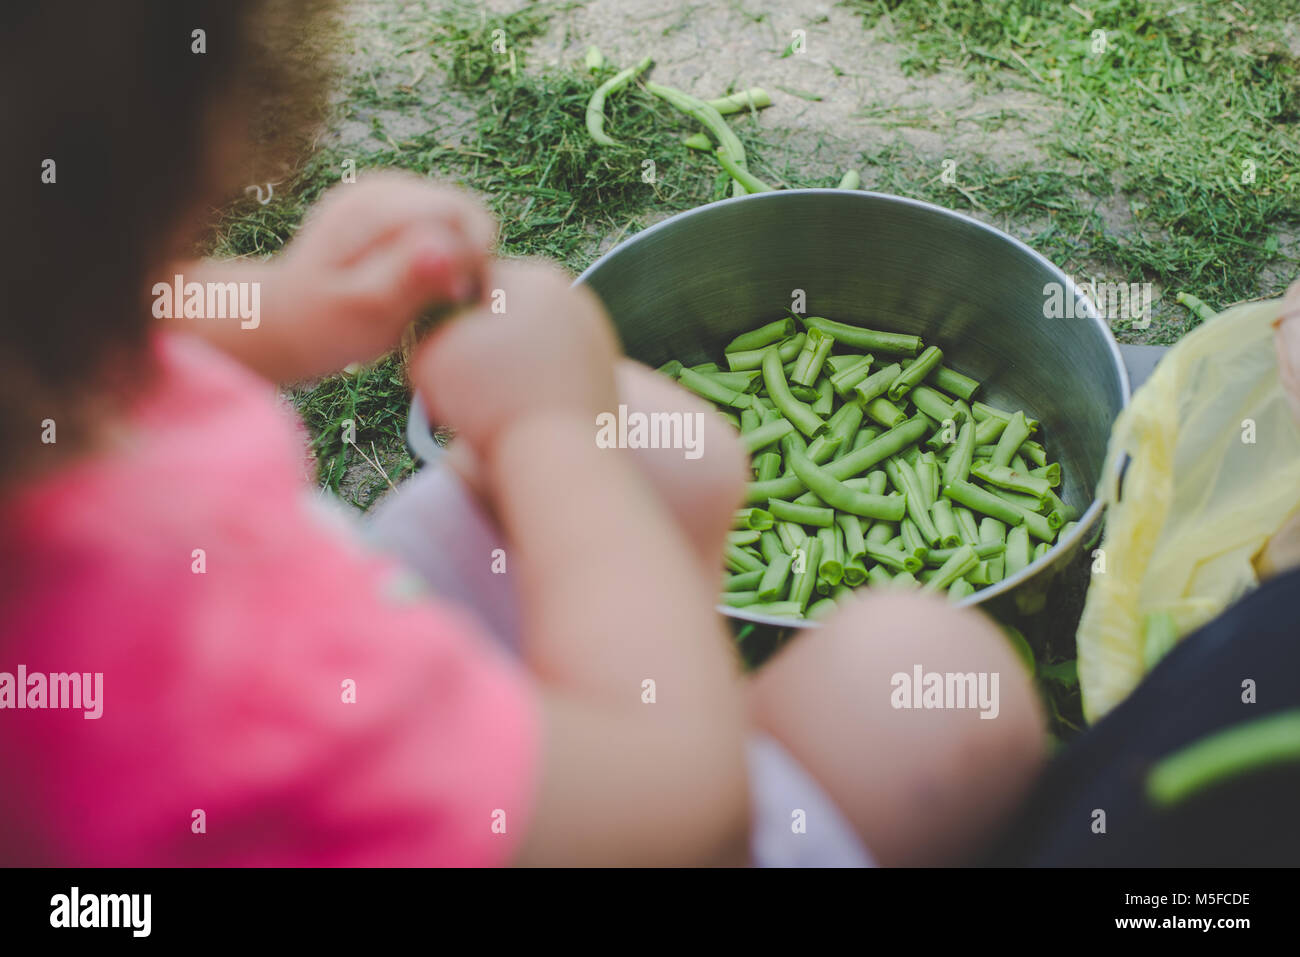 A young girl child snaps fresh green beans into a pot. - Stock Image